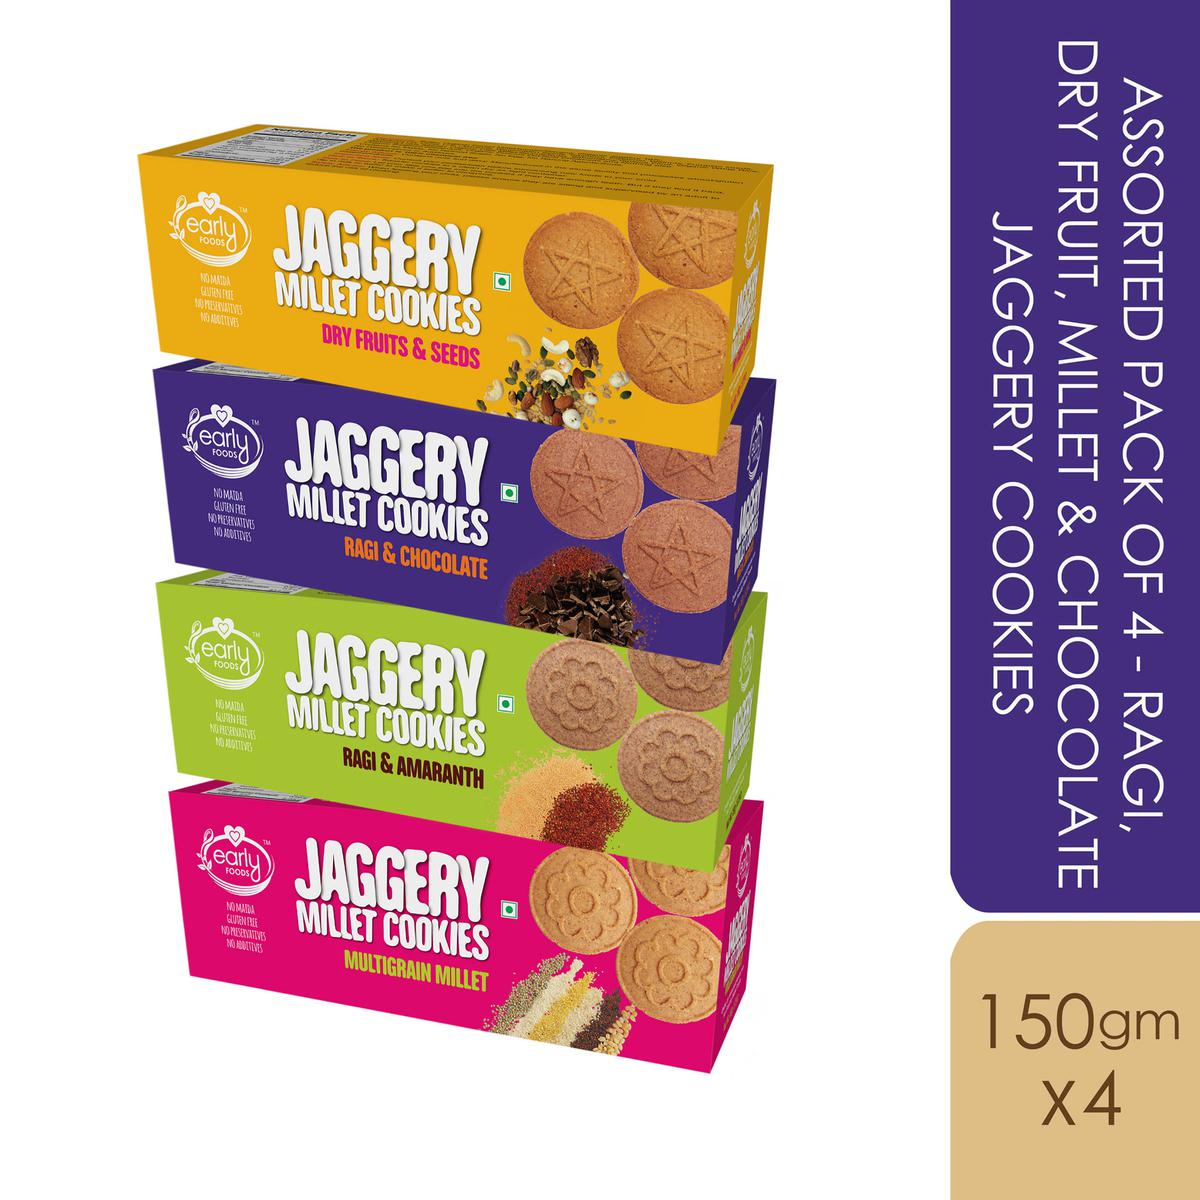 Early Foods - Assorted Pack of 4 - Ragi, Dry Fruit, Millet & Chocolate Jaggery Cookies X 4, 150g each